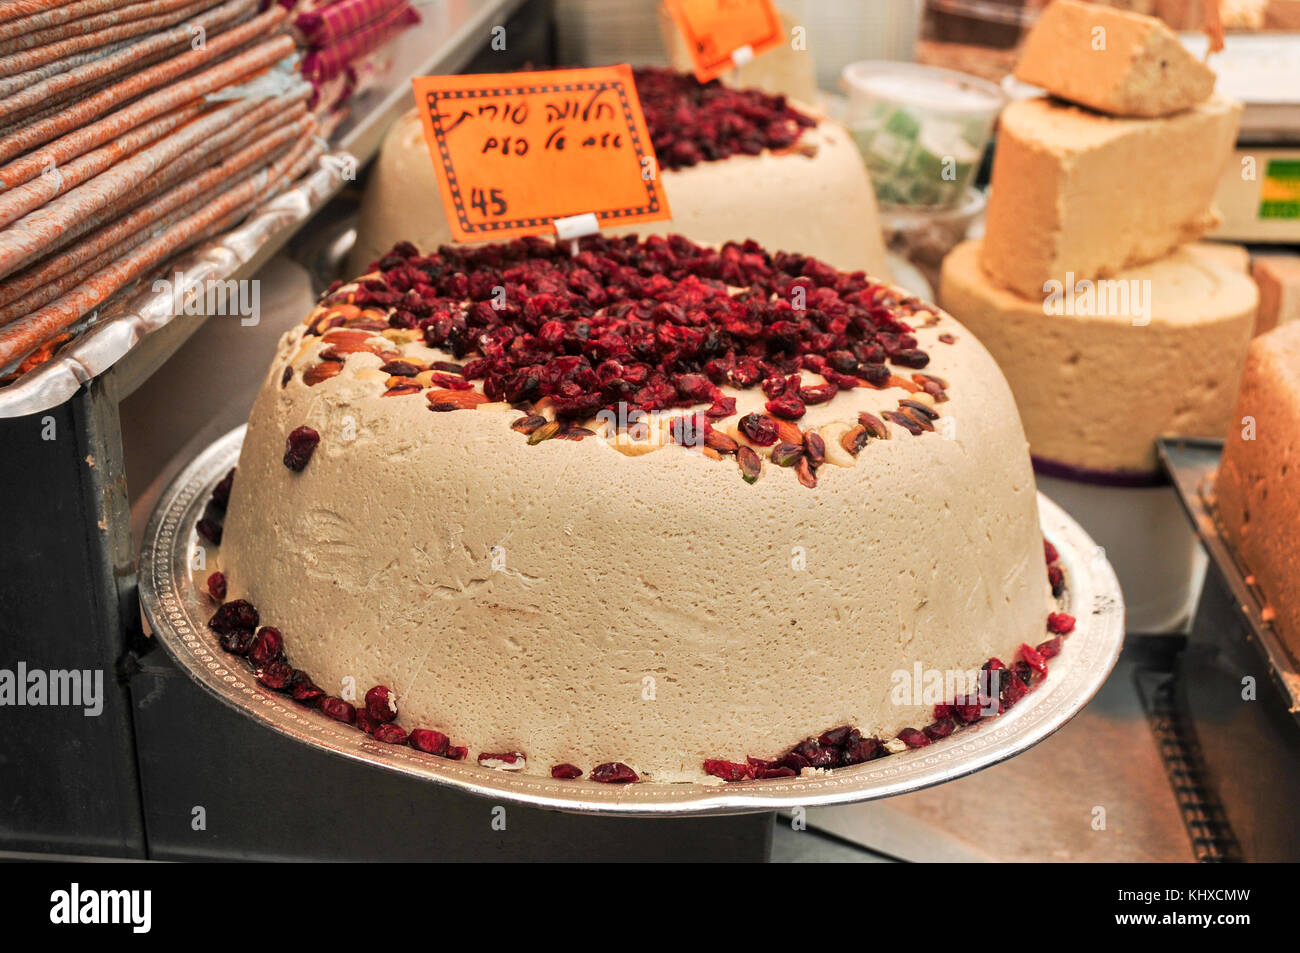 Sweets and halva for sale at the Ben Yehuda Market in Jerusalem, Israel - Stock Image